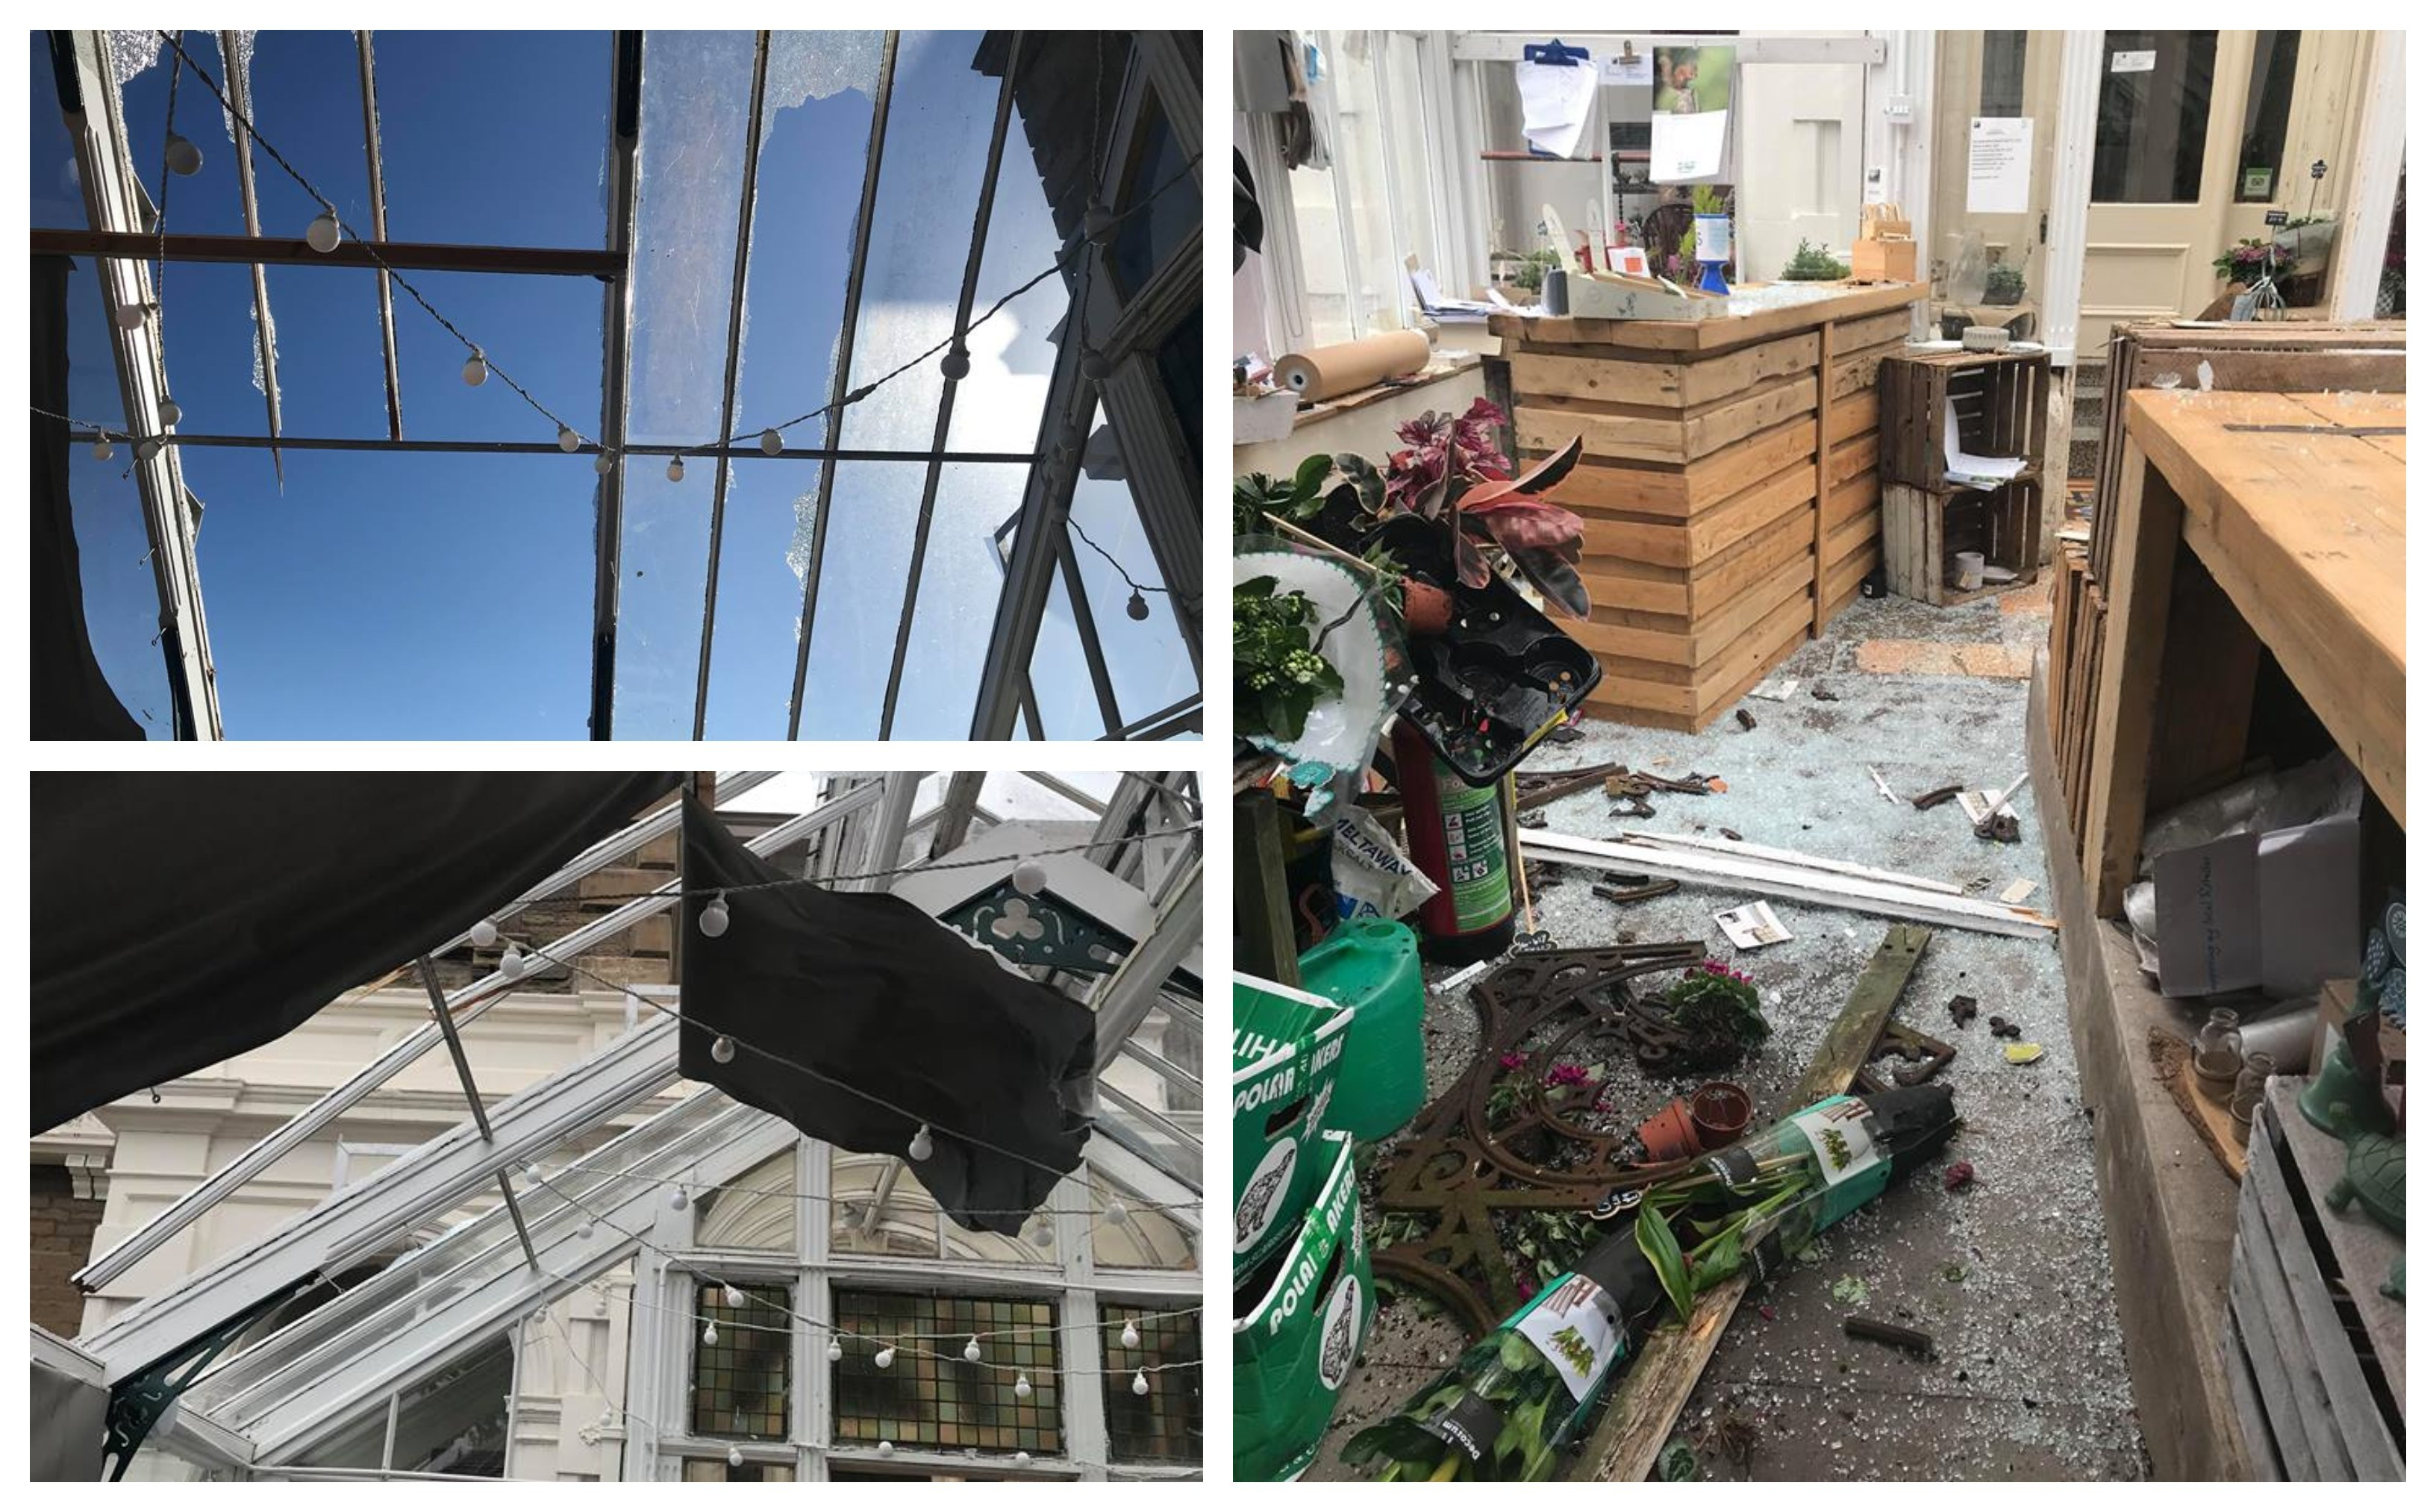 Storm Ali damaged the conservatory at Turriff's Garden Centre and Farm Shop.